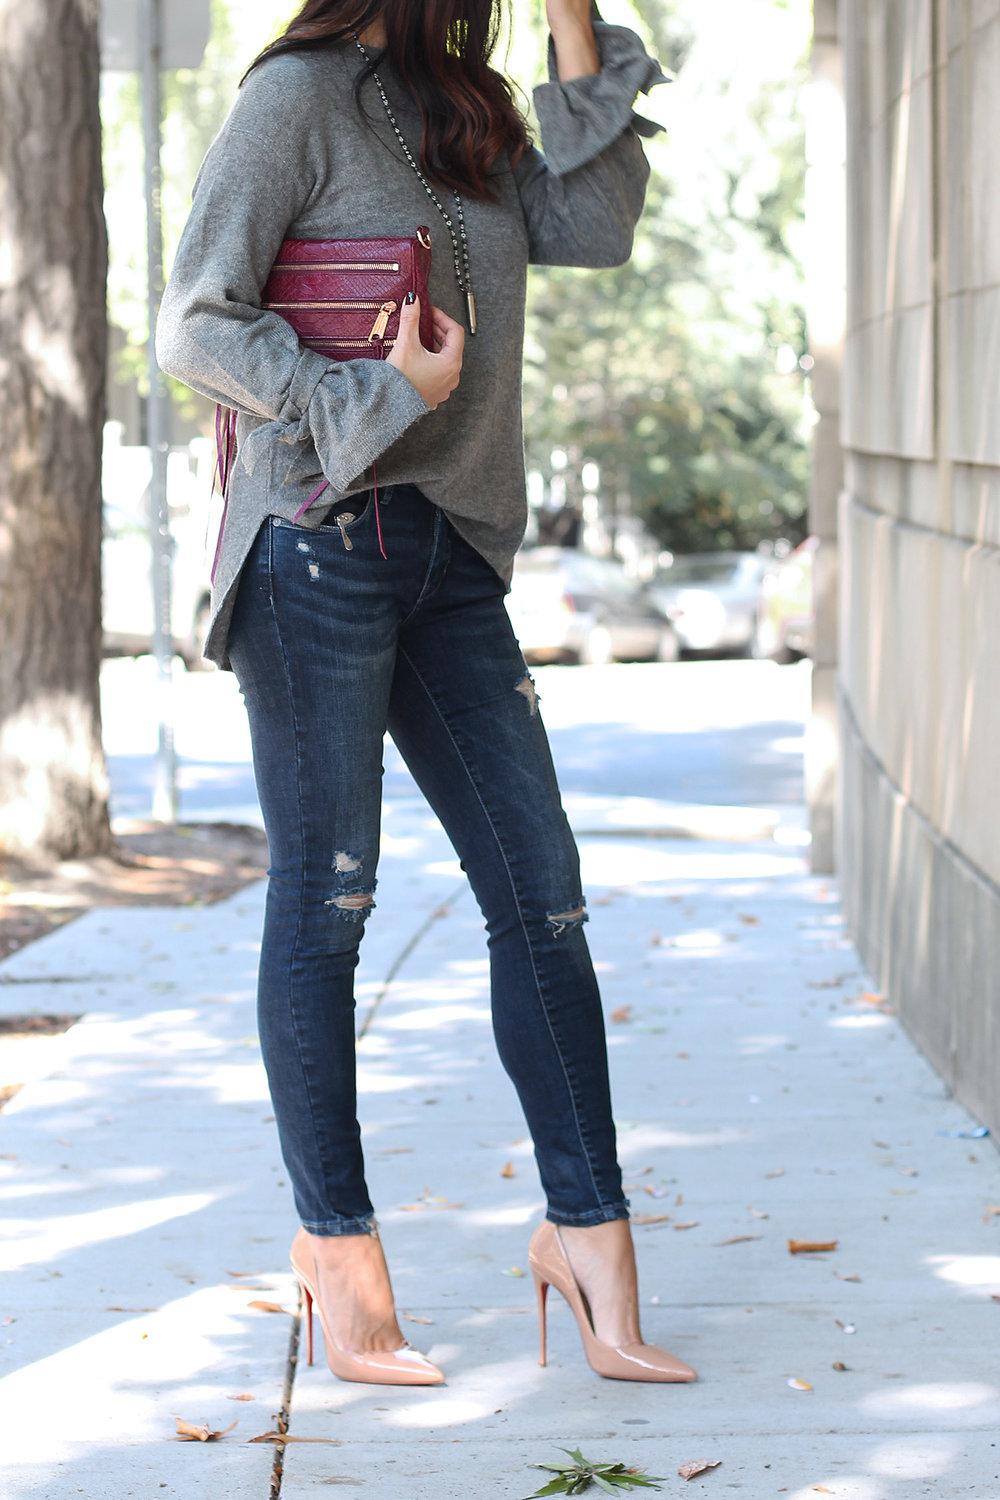 Distressed Jeans Outfit, Louboutin So Kate Pumps